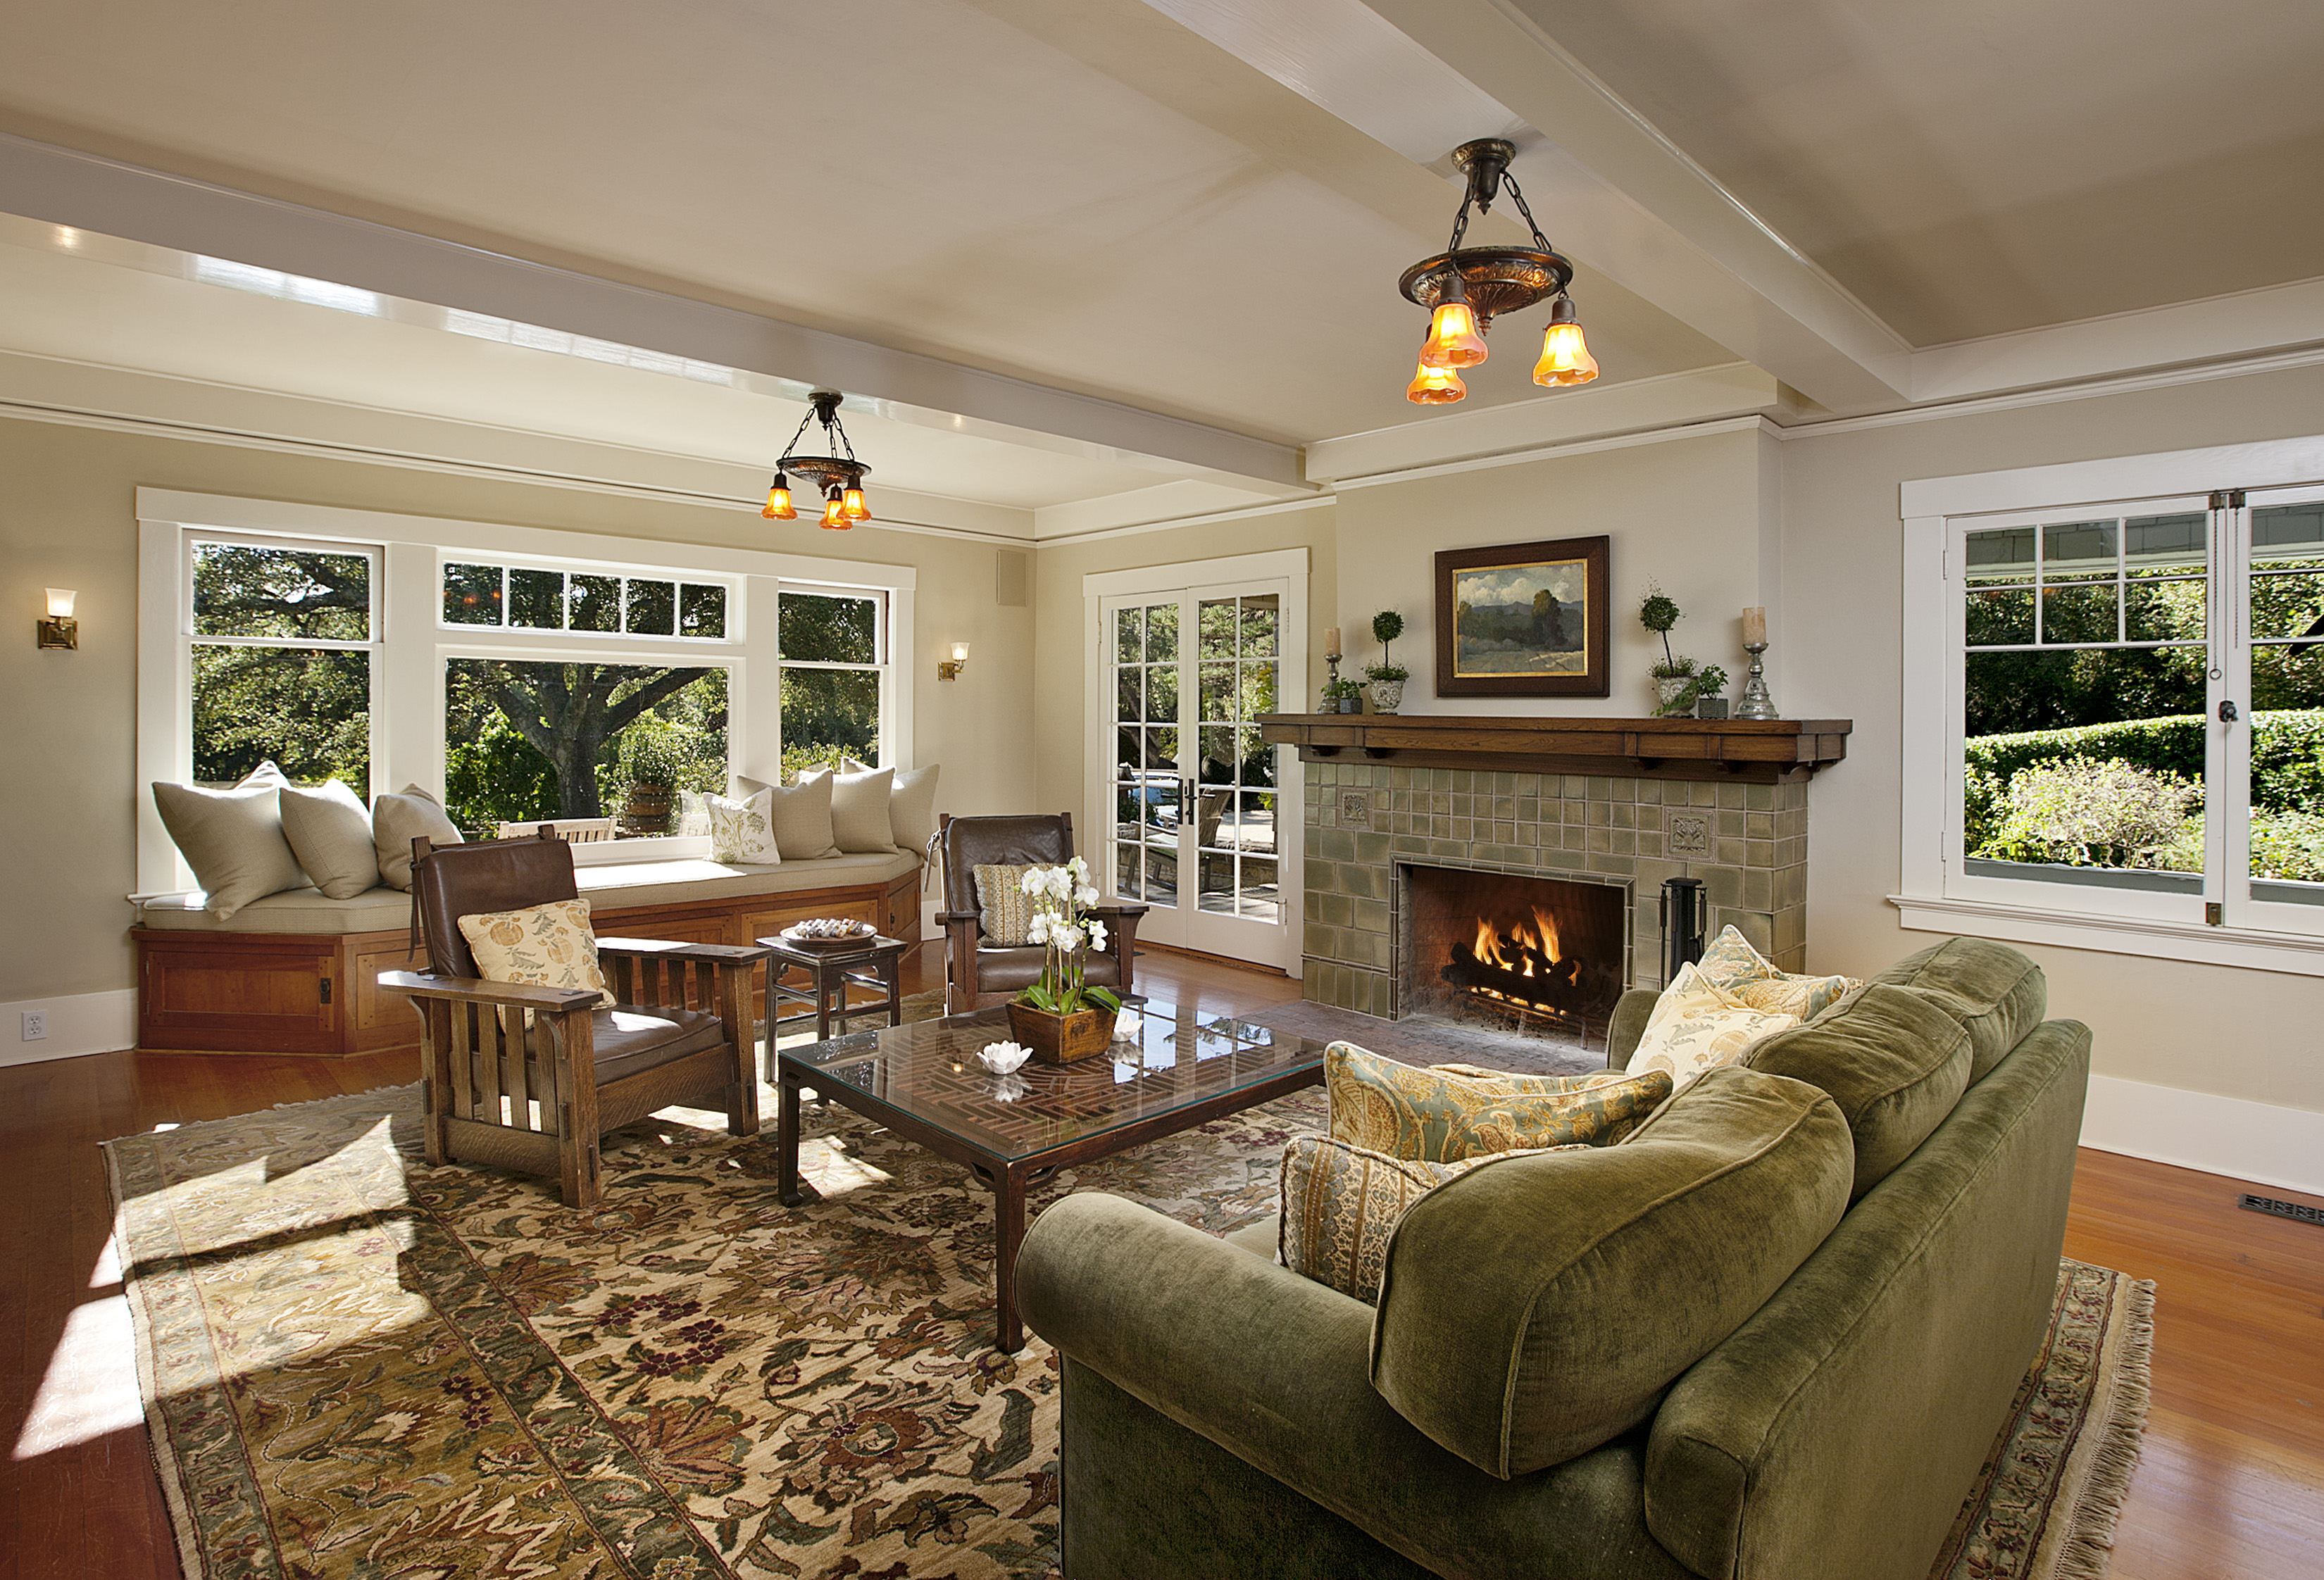 Popular home styles for 2012 montecito real estate Decorating bungalow style home